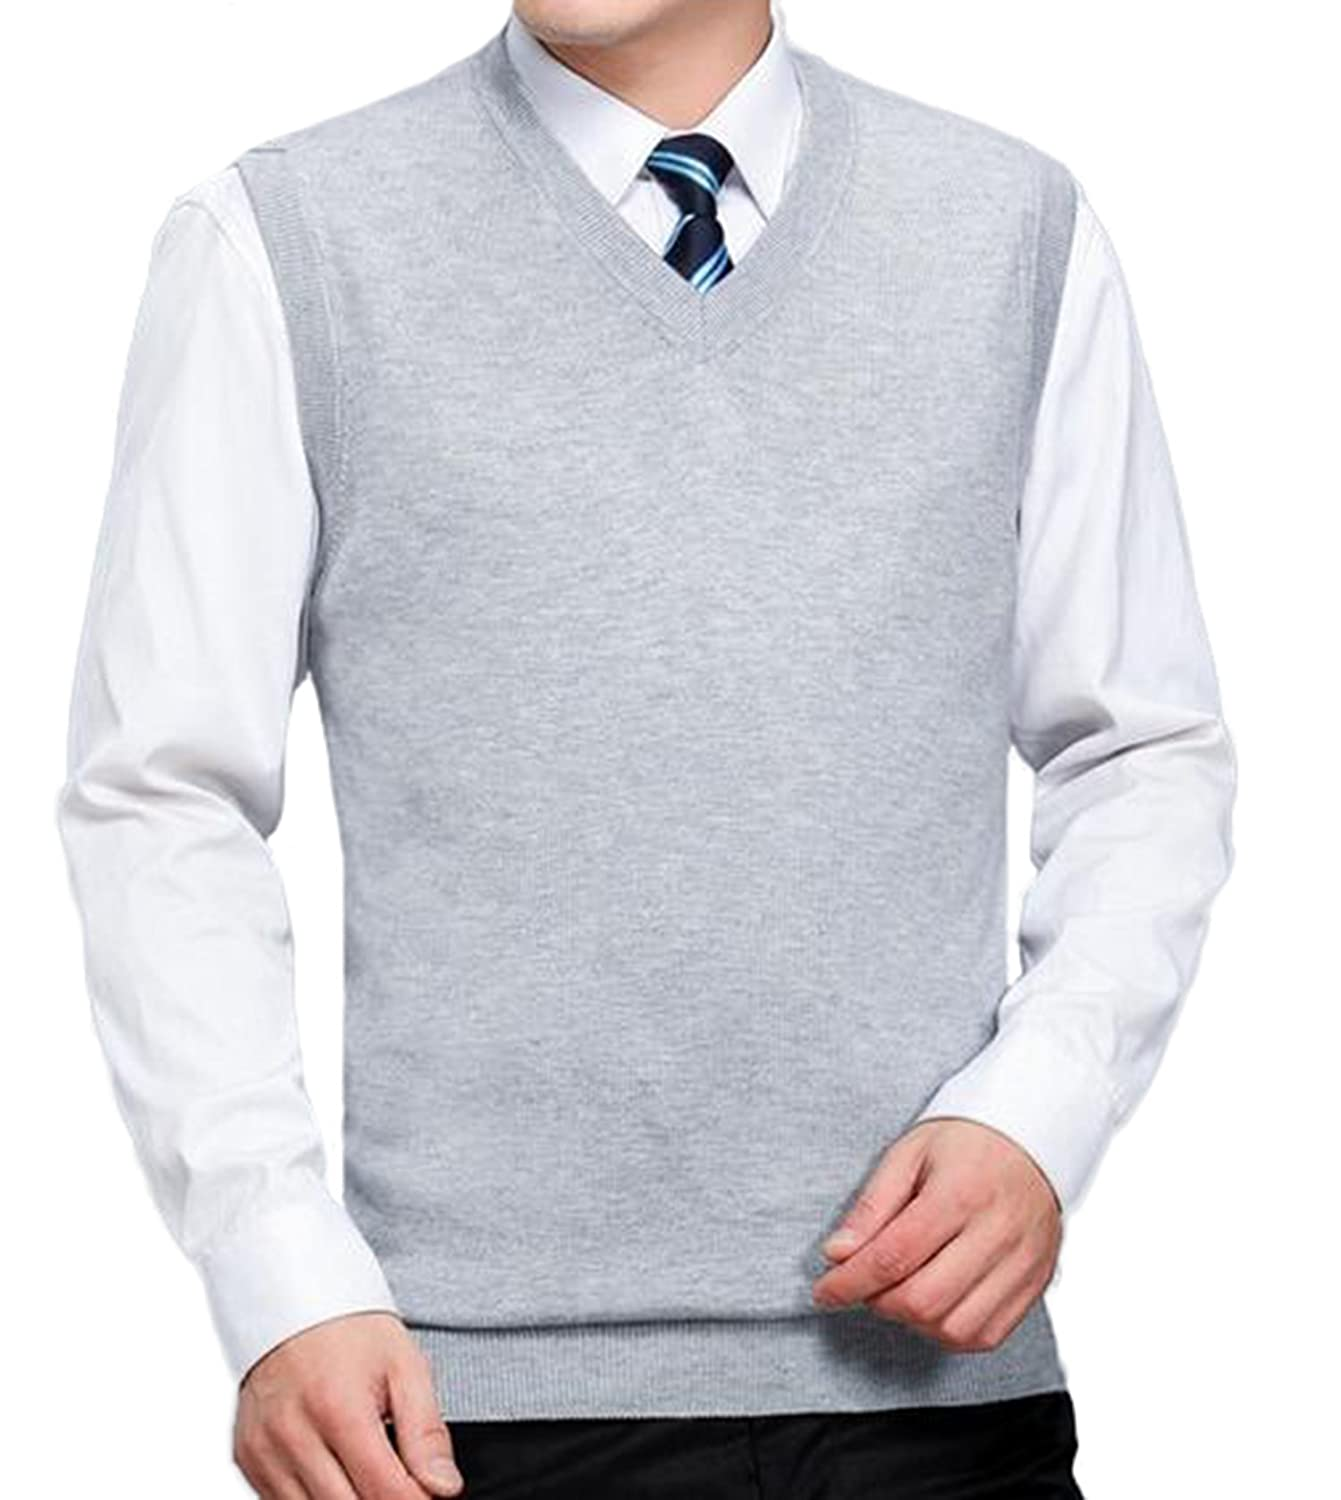 DD.UP Men's Knitted V-Neck Middle-Aged Business Wool Sweater Vest